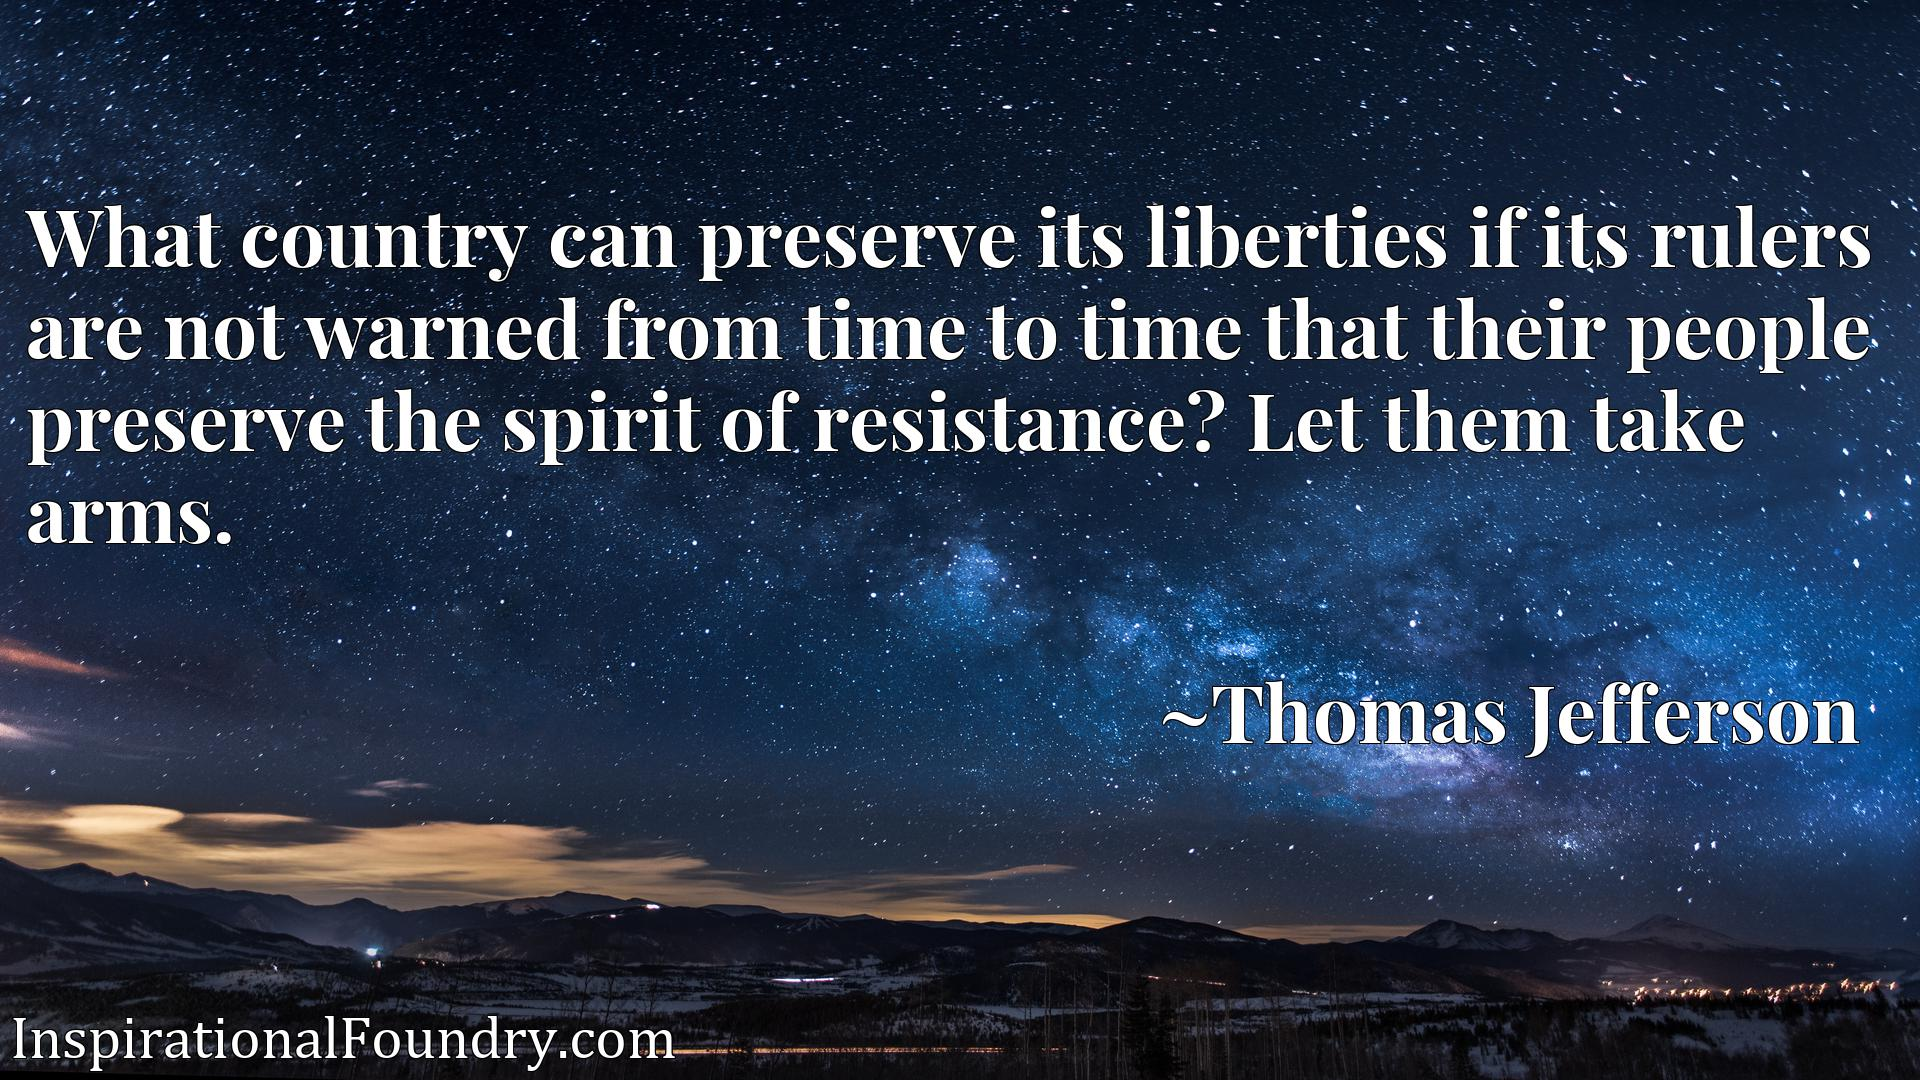 What country can preserve its liberties if its rulers are not warned from time to time that their people preserve the spirit of resistance? Let them take arms.